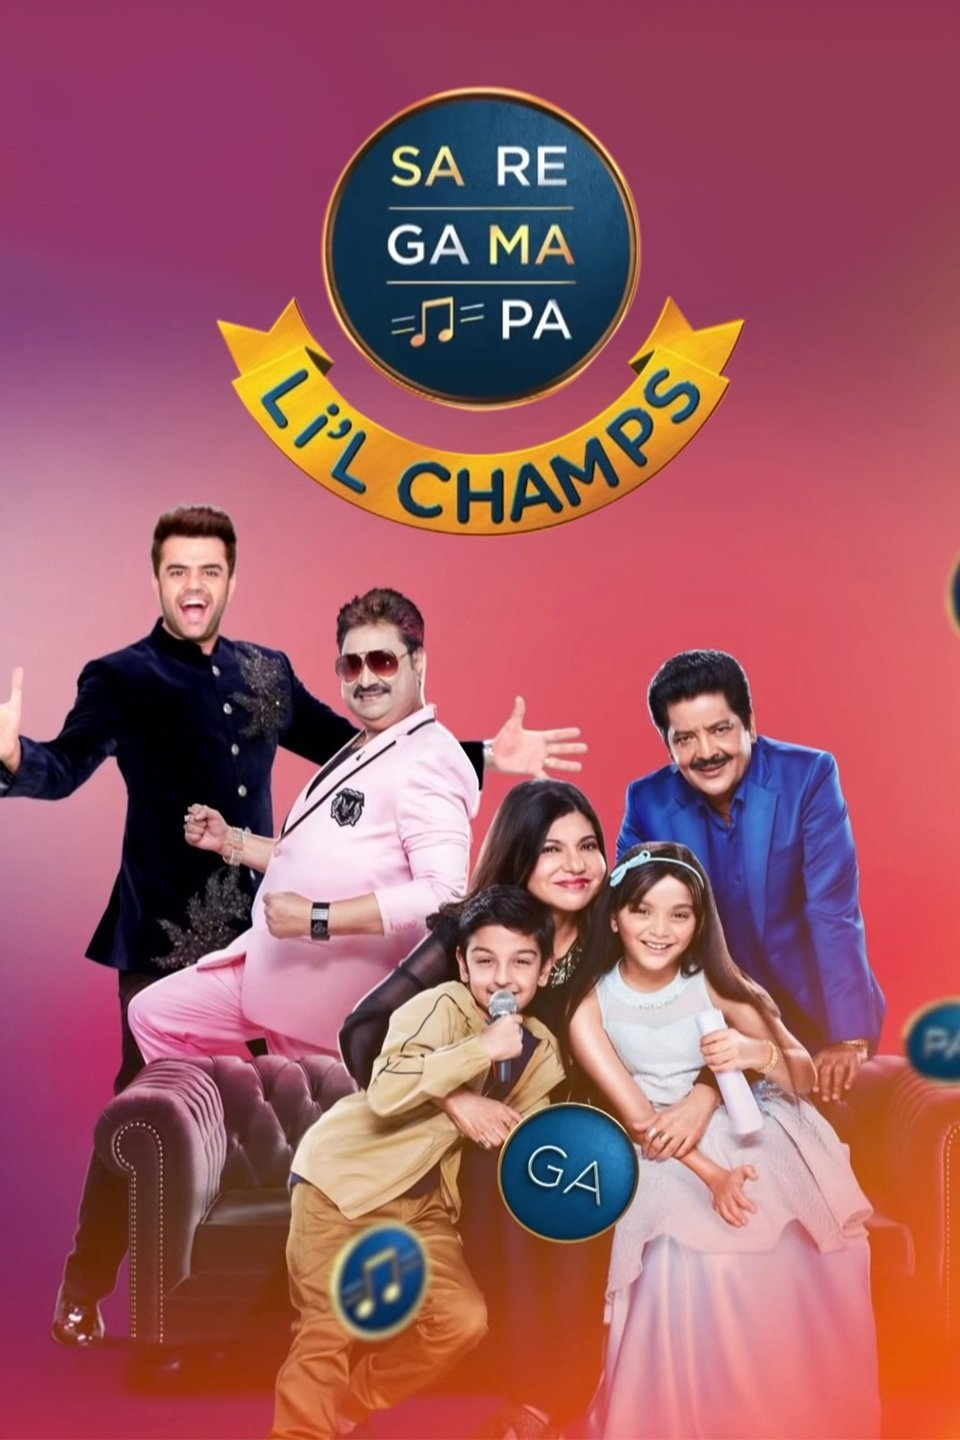 Kapil Sharma India Best Dancer Sa Re Ga Ma Pa Lil Champs 27th September 2020 All DL